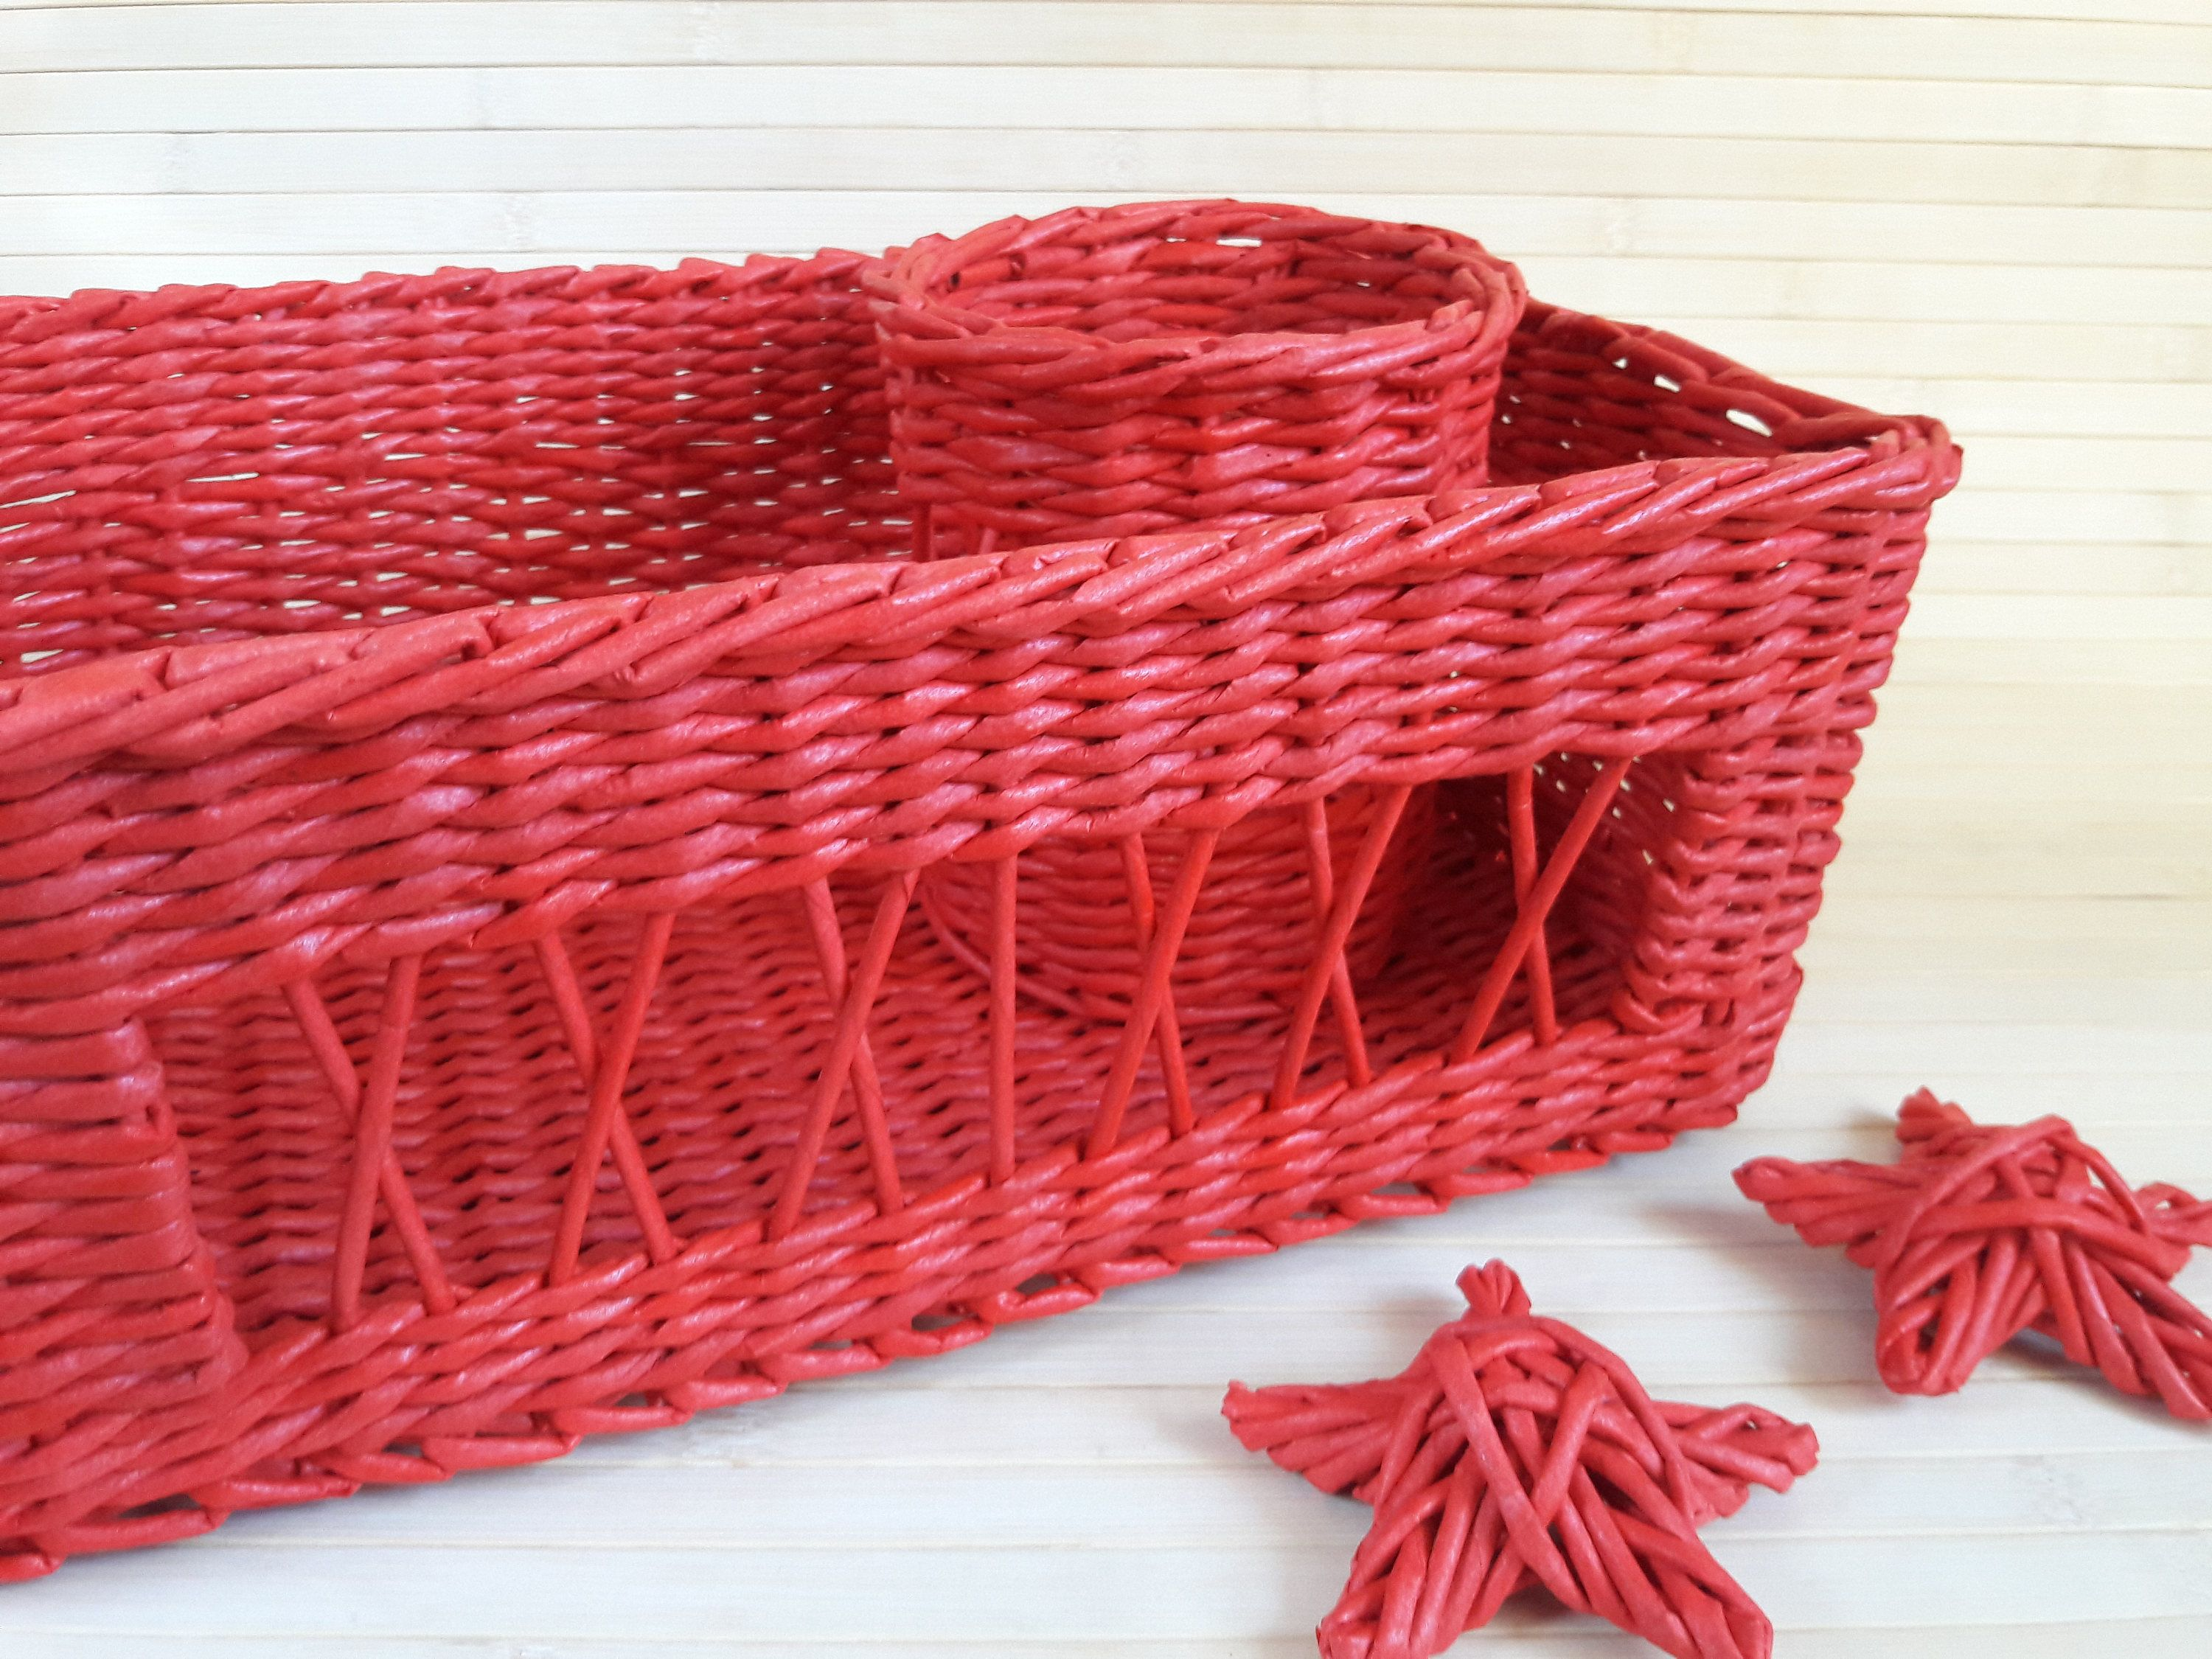 Set Of Two Baskets Summer Party Wicker Basket 4th Of July Decor Cosmetic Basket  Storage Basket Brush Holder Bathroom Organizer By VictoriyankaHandMade On  ...